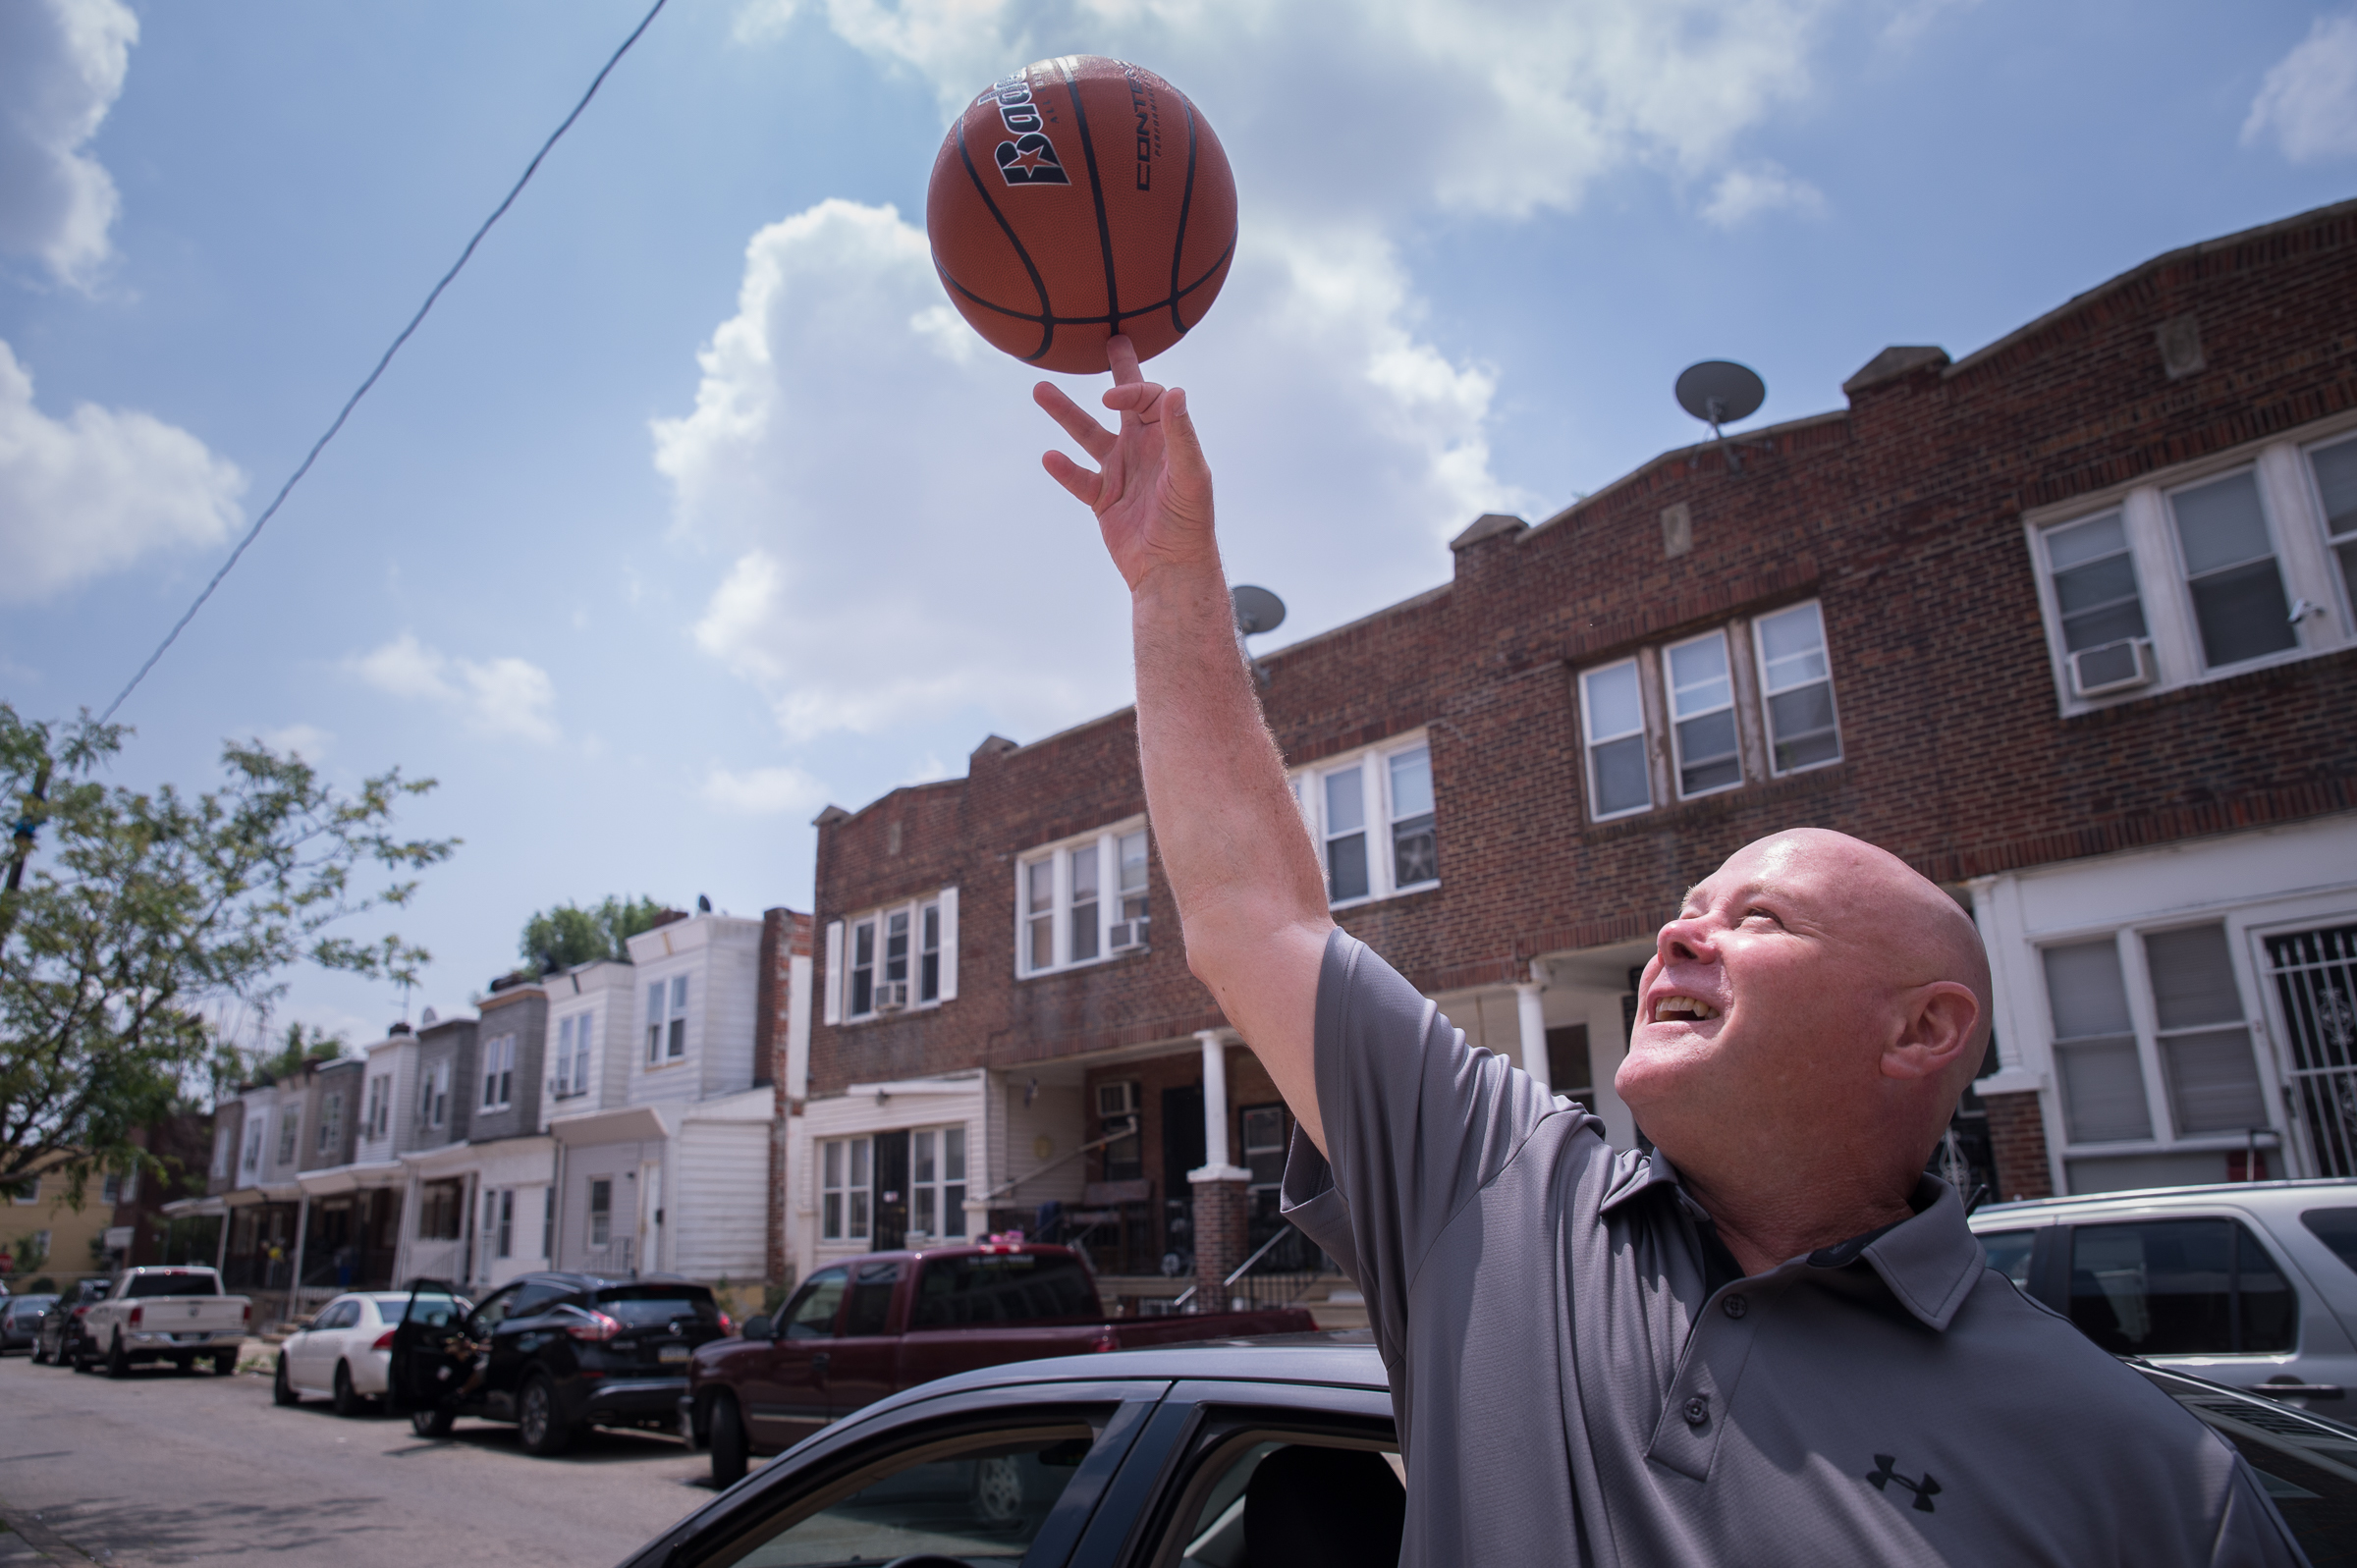 Mike Gibson, a process server who grew up in Southwest Philadelphia, spins a ball outside the John M. Patterson elementary school at 70th and Buist on June 14th, 2017.